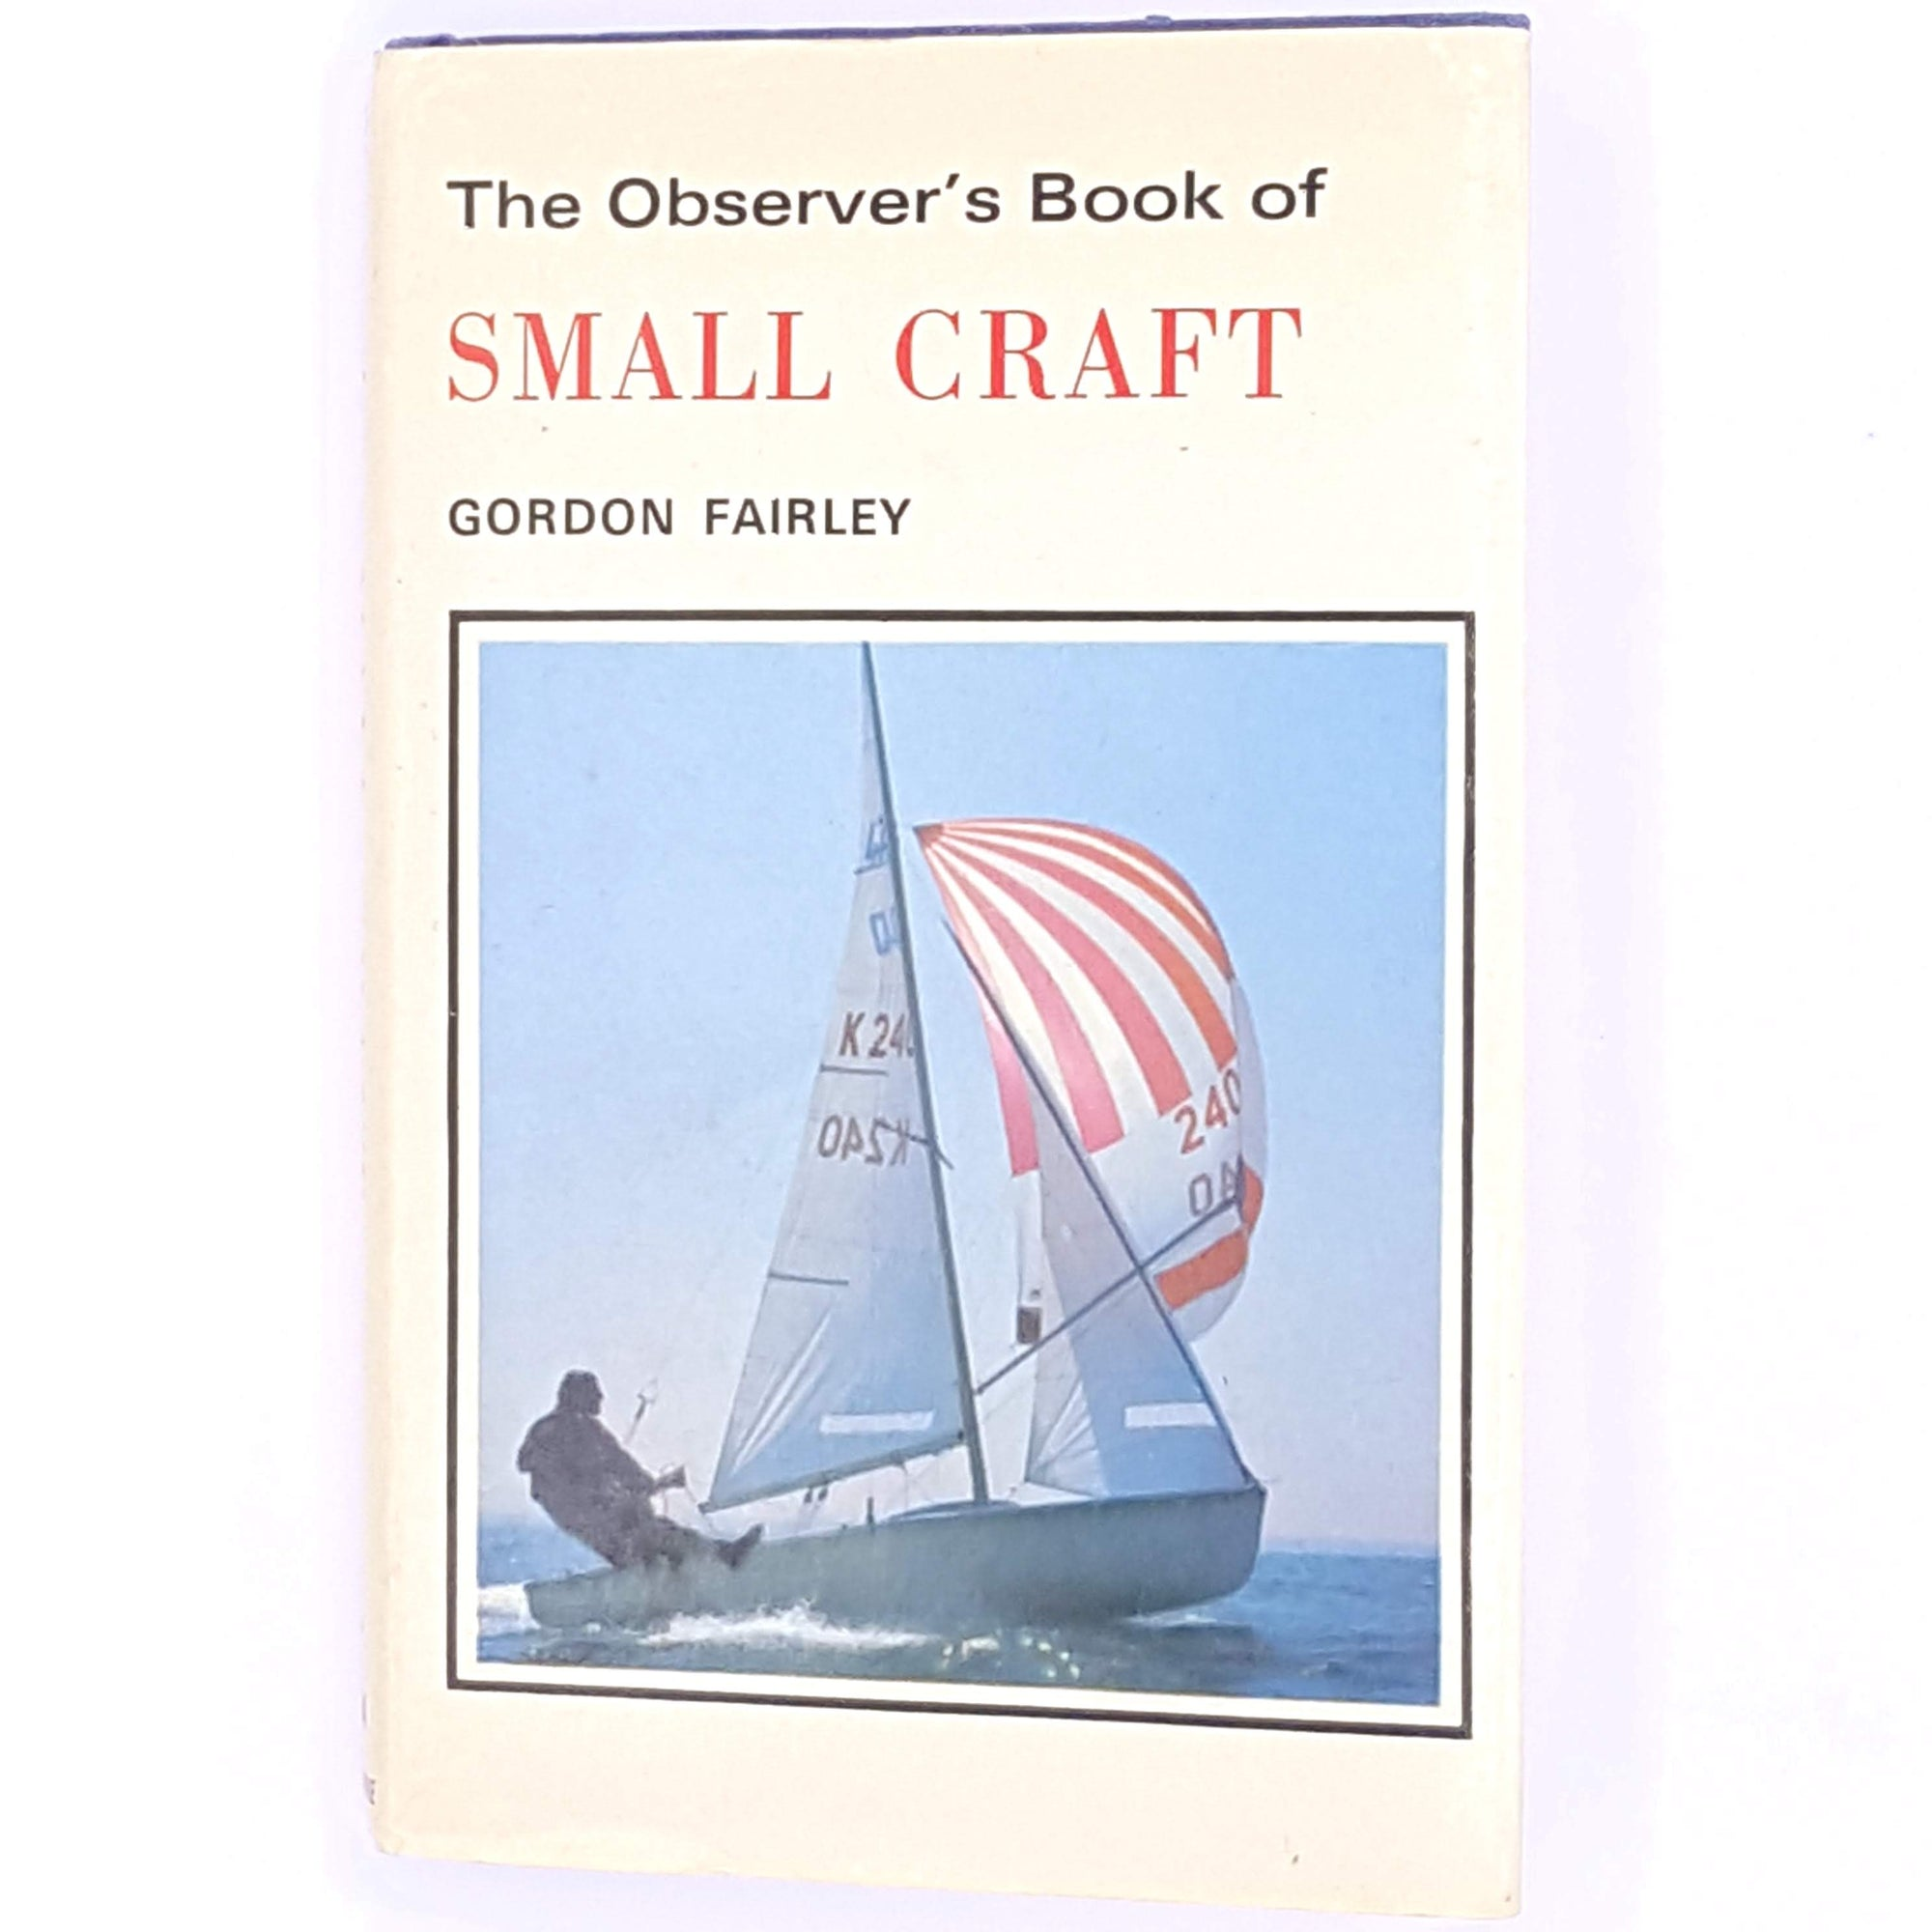 pocket-small-craft-classic-antique-books-old-warne-decorative-observer-gordon-fairley-thrift-country-house-library-vintage-guide-